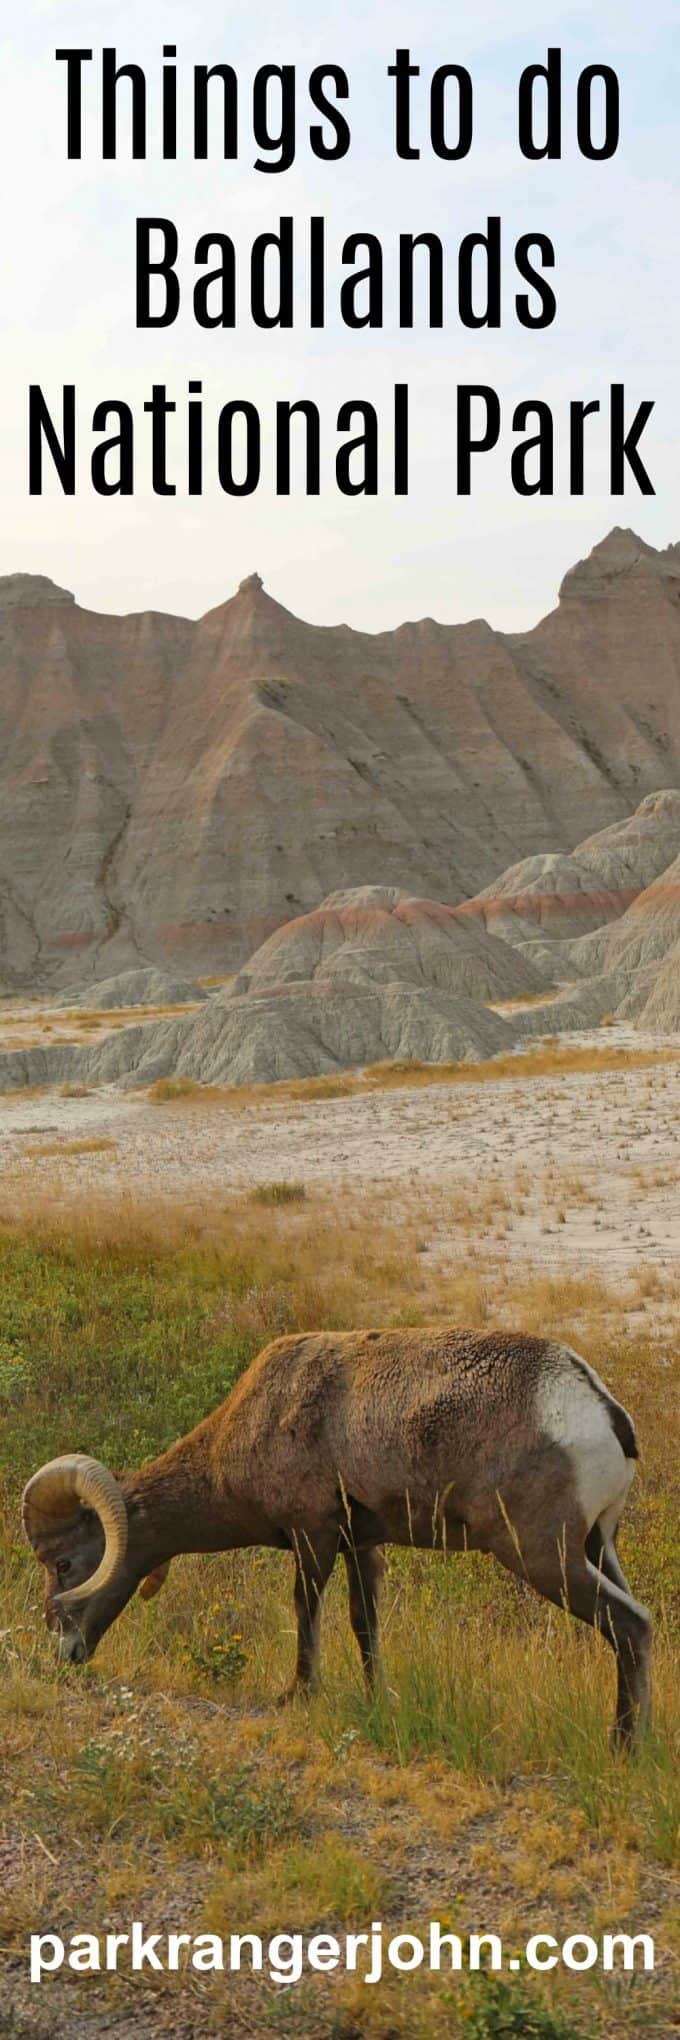 Things to do at Badlands National Park in South Dakota include Road Trips/Auto Touring, Photography, hiking, where to see sunrise and sunset, wildlife viewing plus visit nearby Wall Drug and Minuteman Missile National Historic Site.